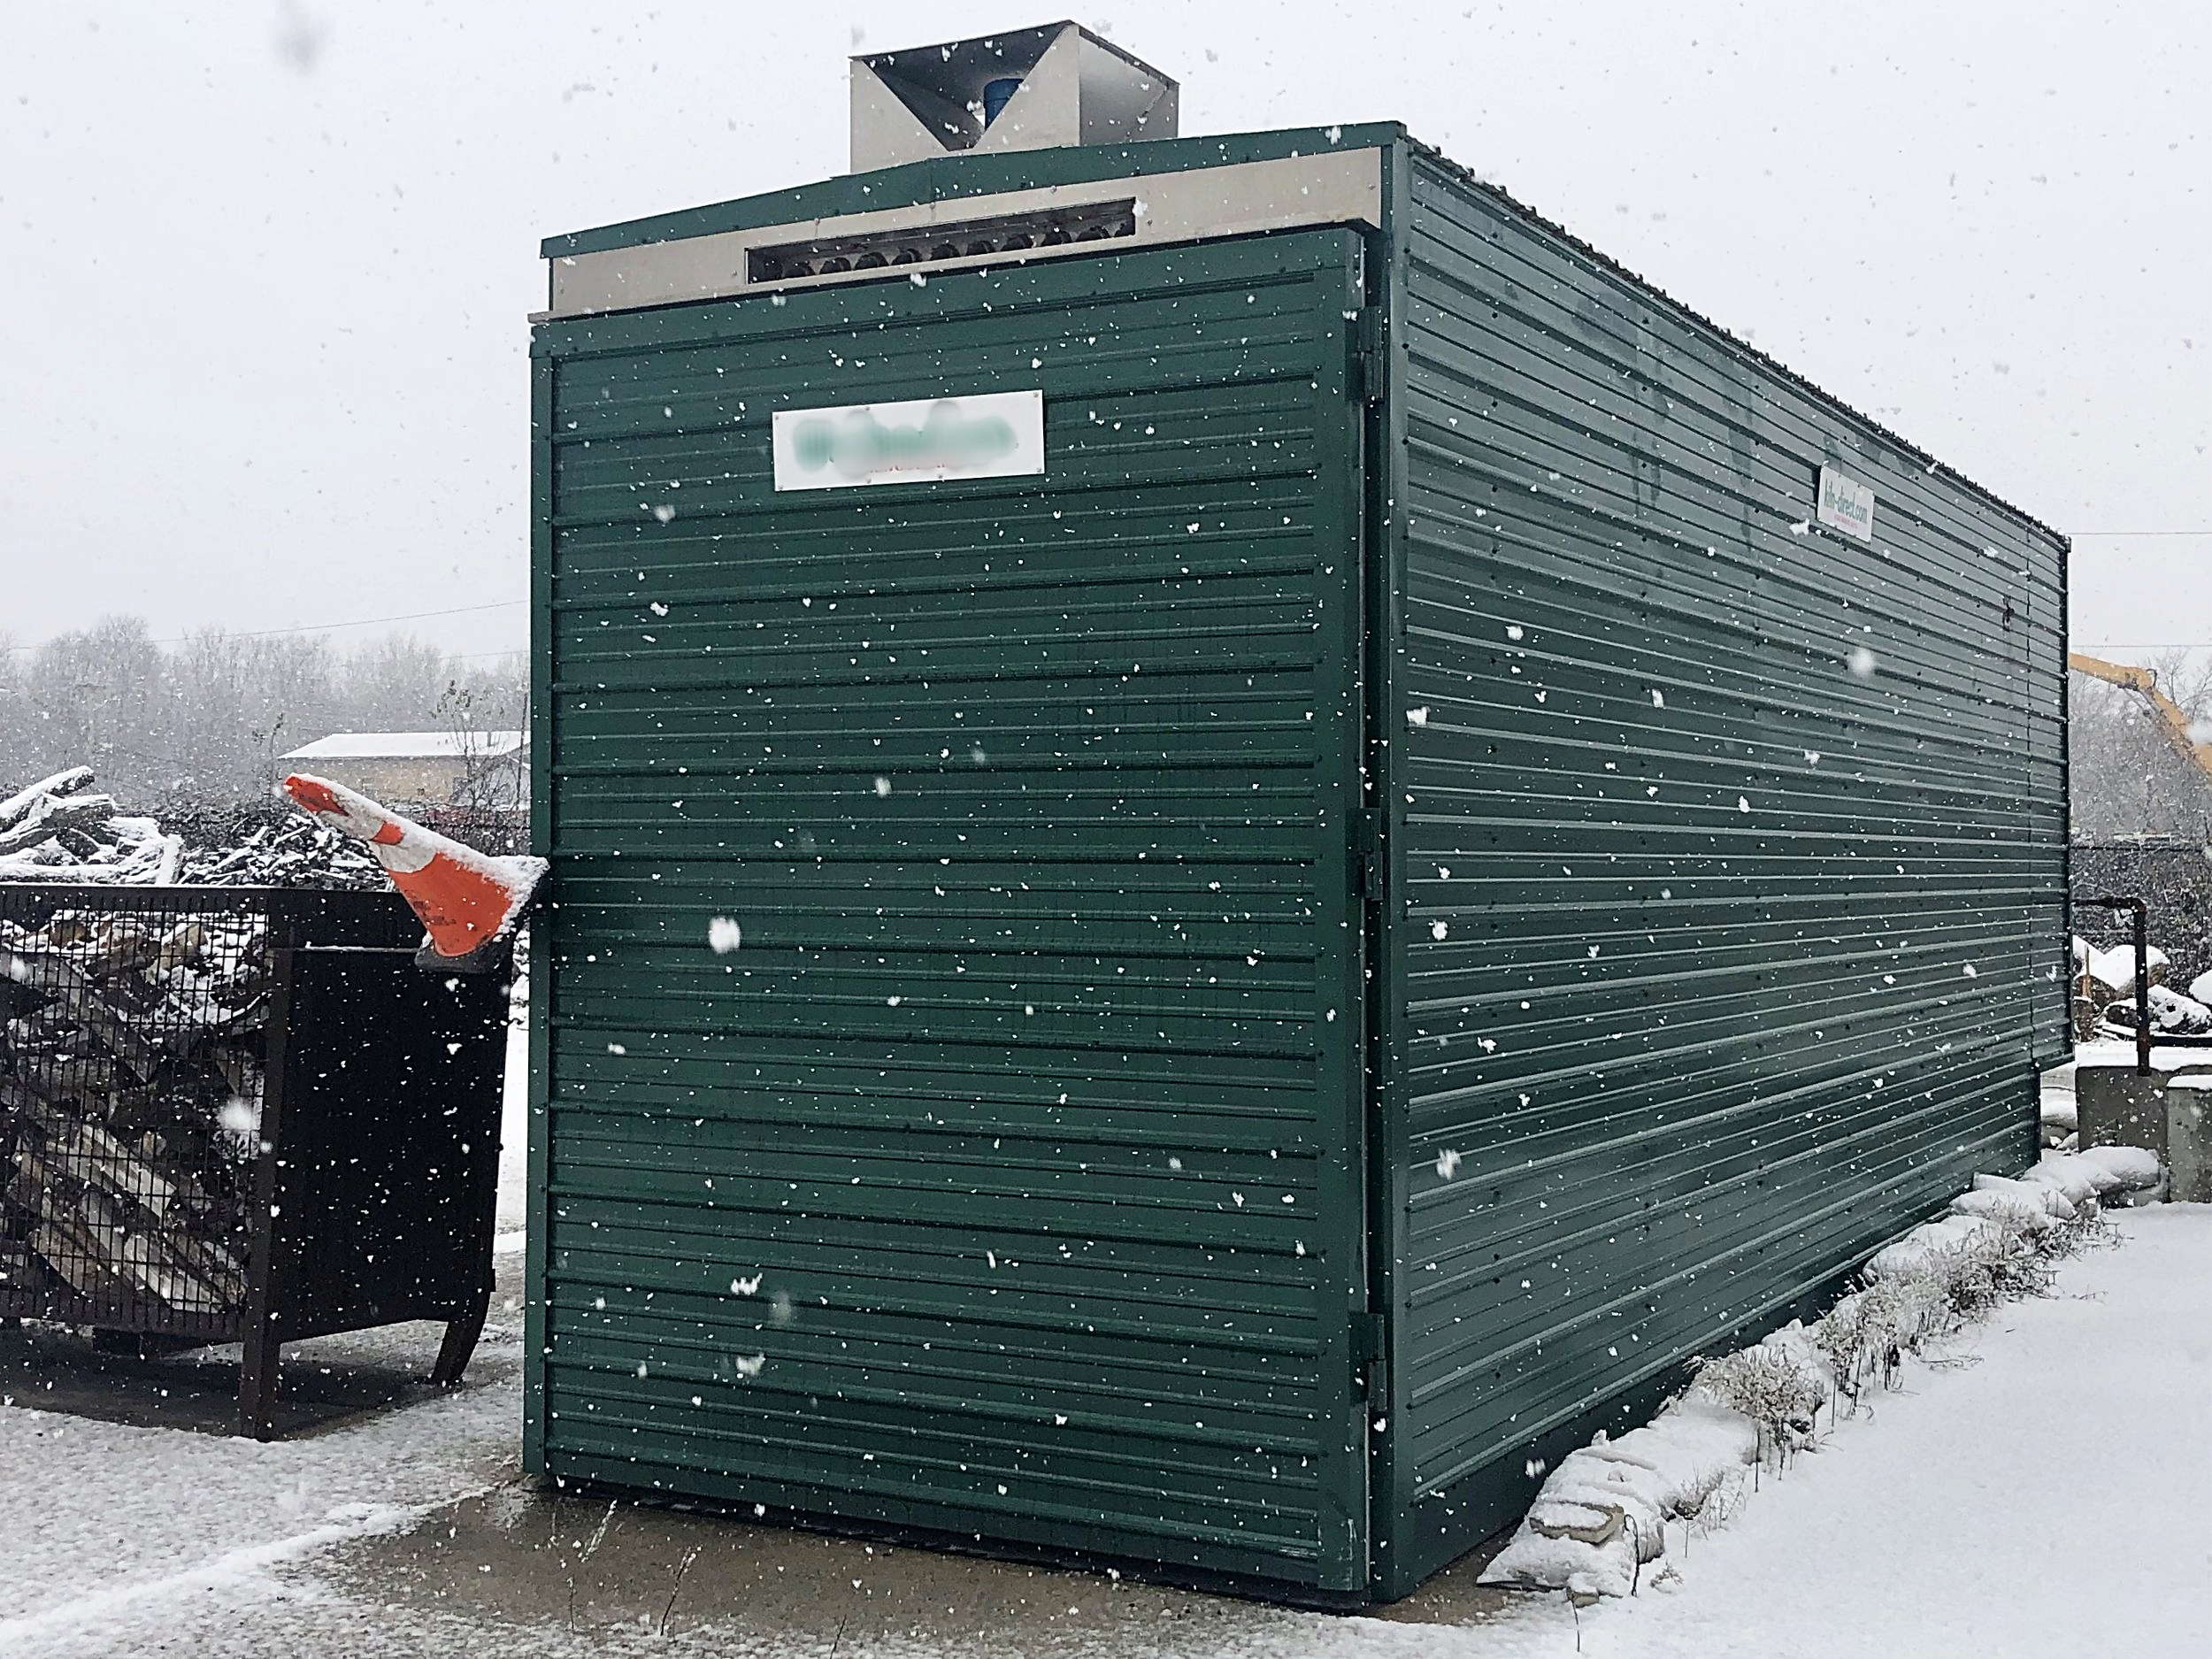 A picture of our kiln used up at the North Yard. Firewood is loaded into large crates and dried for up to 2 days at high temperatures to ensure low moisture content.